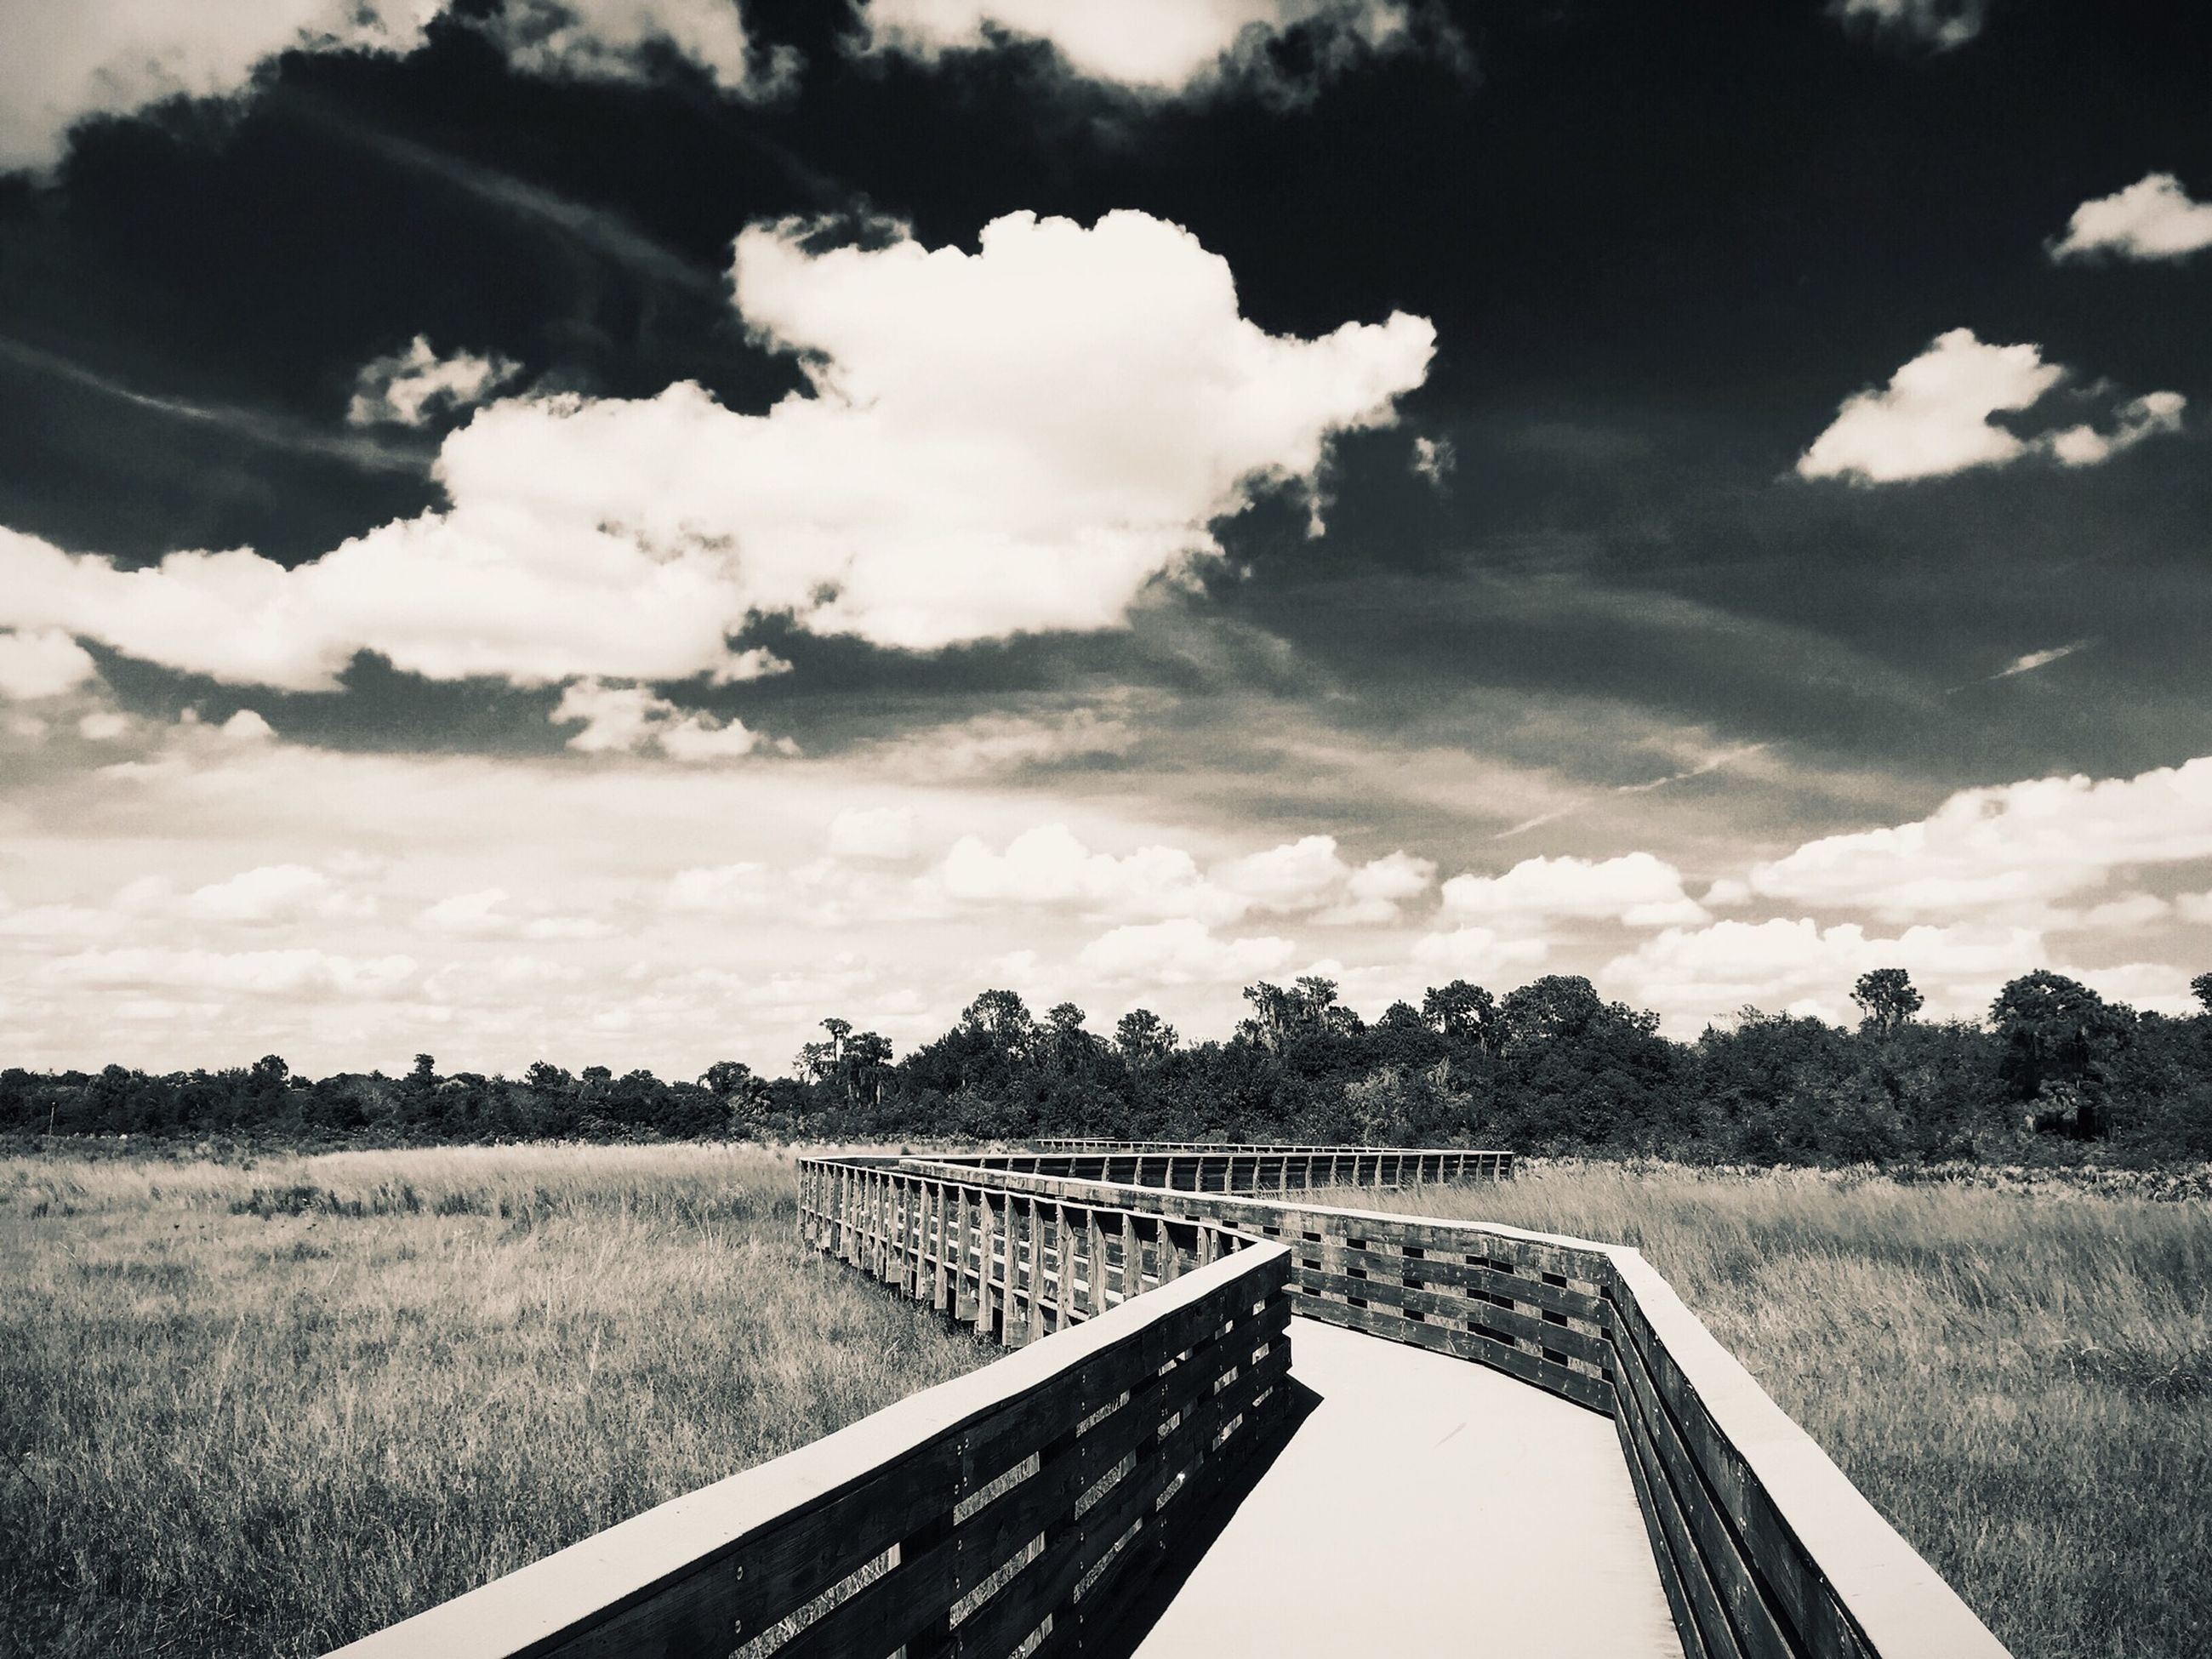 sky, landscape, field, grass, cloud - sky, tranquility, the way forward, tranquil scene, railing, cloud, cloudy, nature, scenics, diminishing perspective, connection, transportation, beauty in nature, long, rural scene, vanishing point